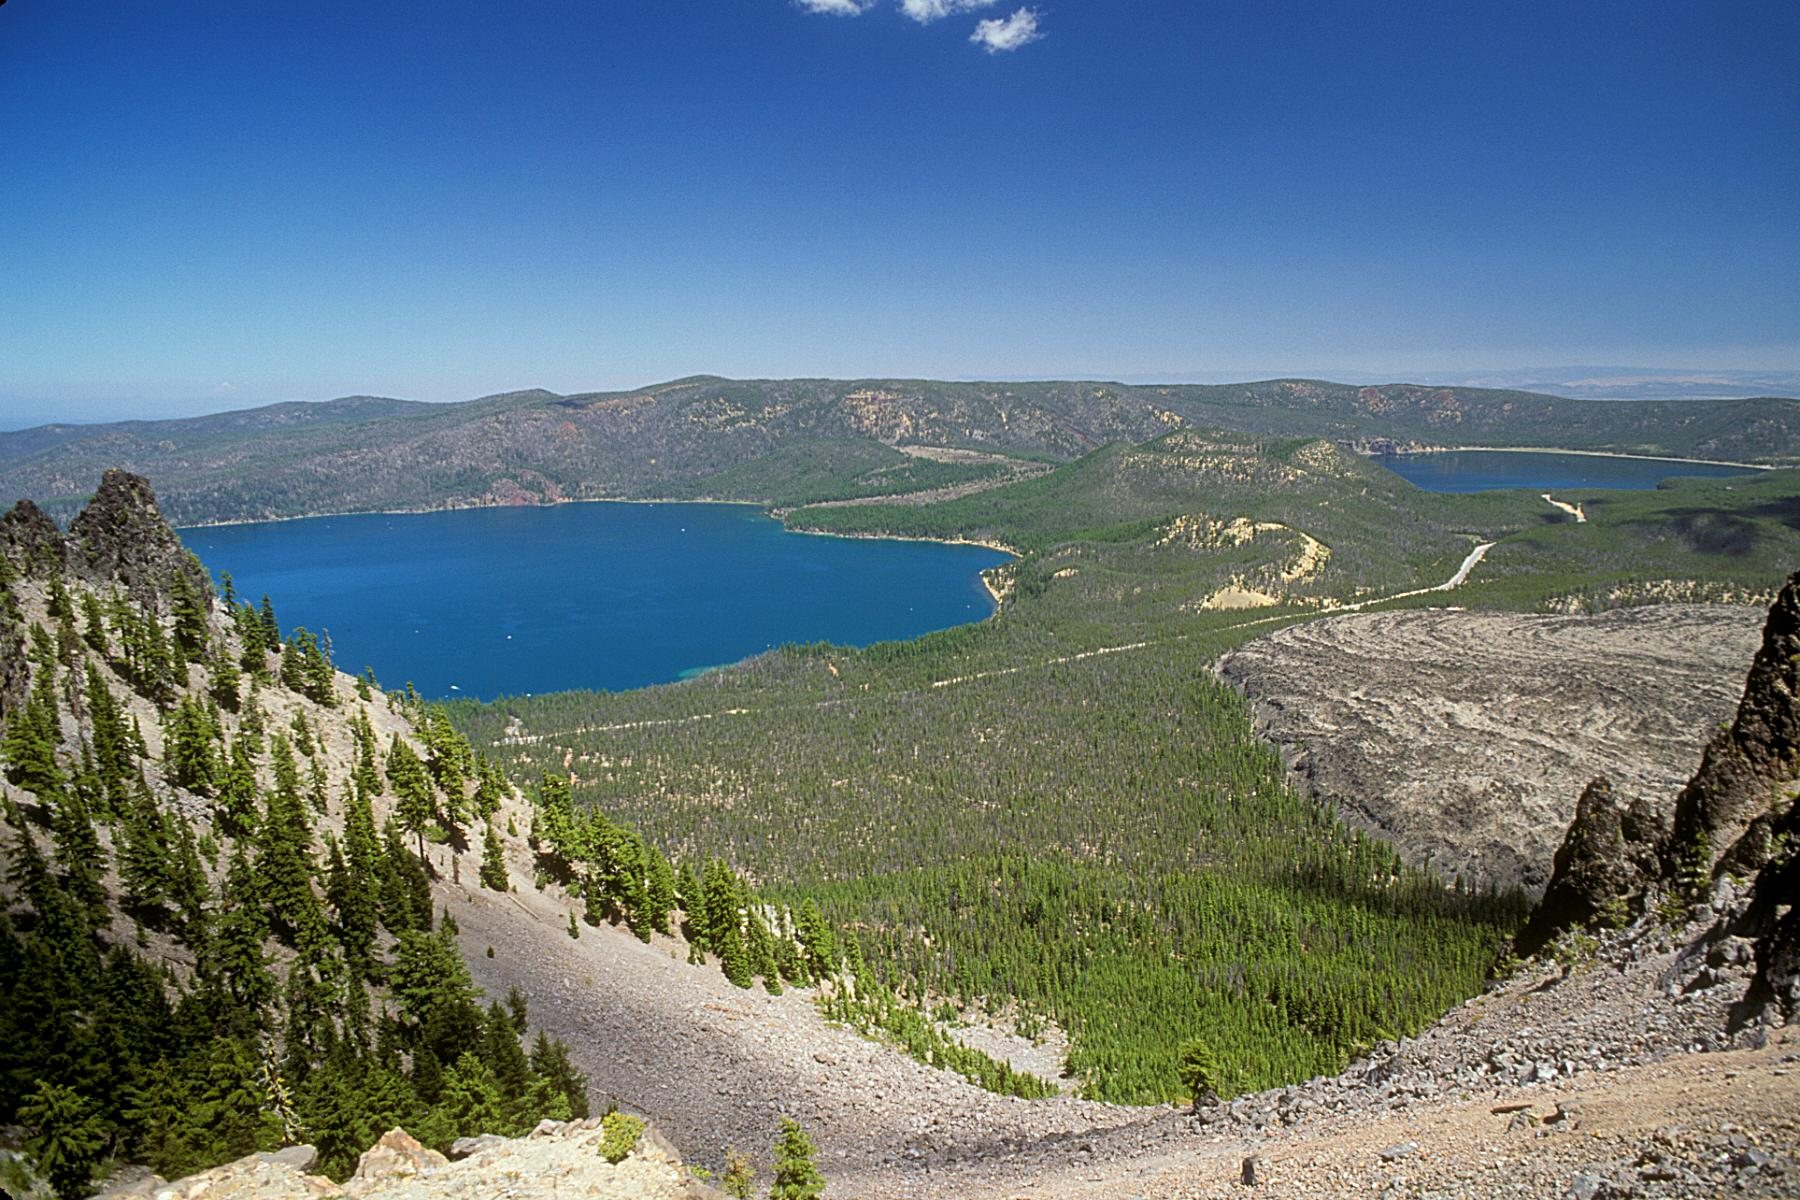 Newberry National Volcanic Monument in Central Oregon (USDA Forest Service)